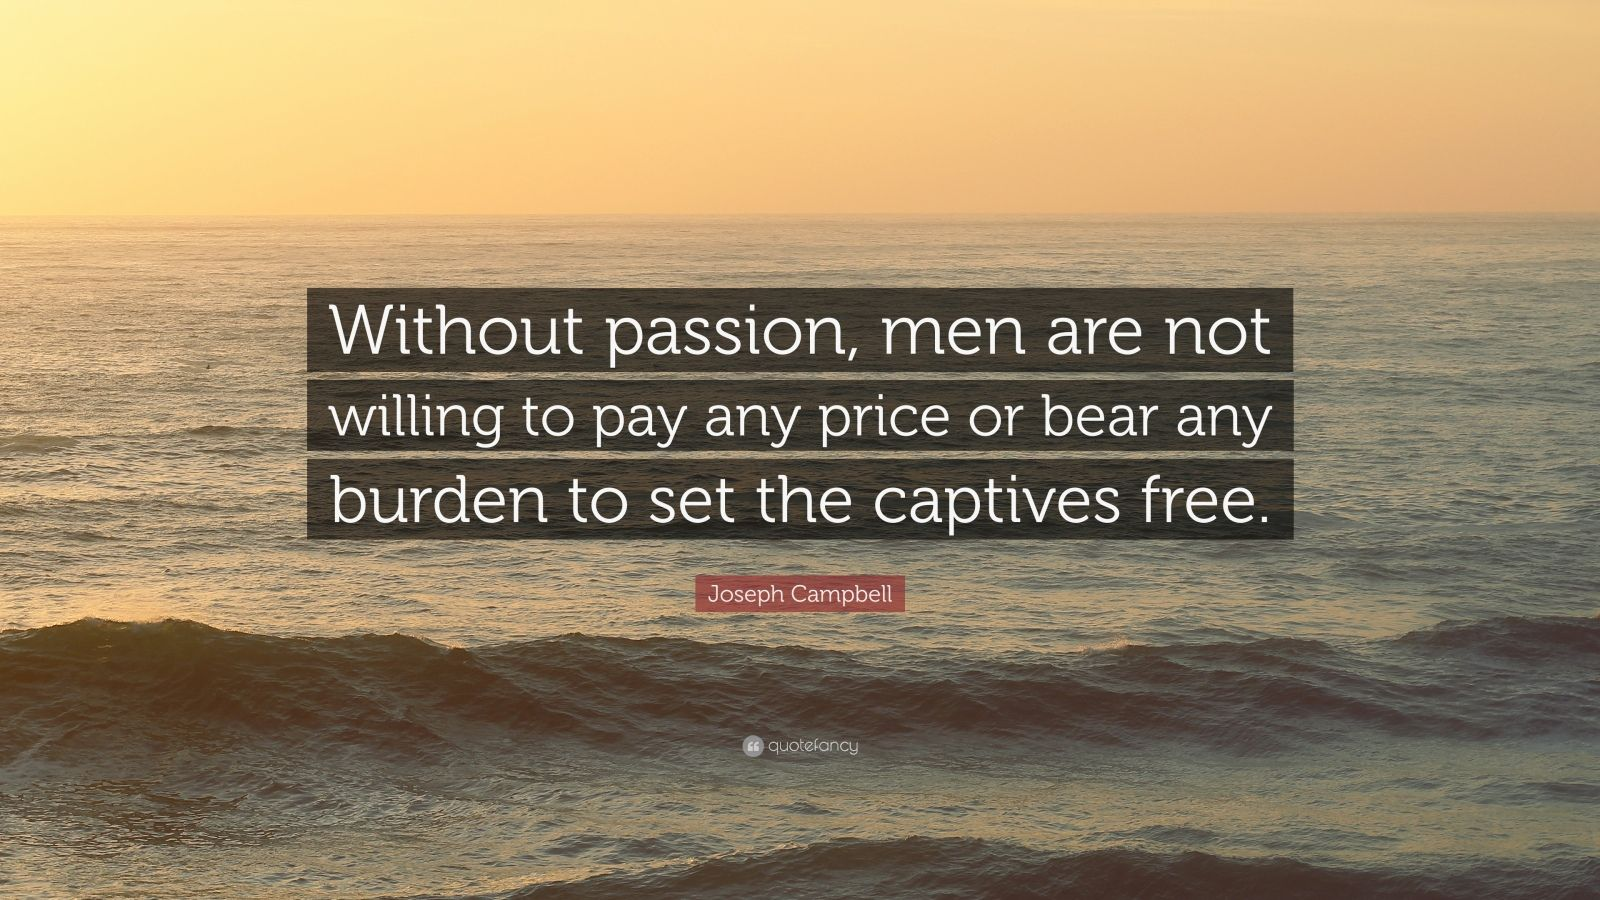 """Joseph Campbell Quote: """"Without passion, men are not willing to pay any price or bear any burden to set the captives free."""""""